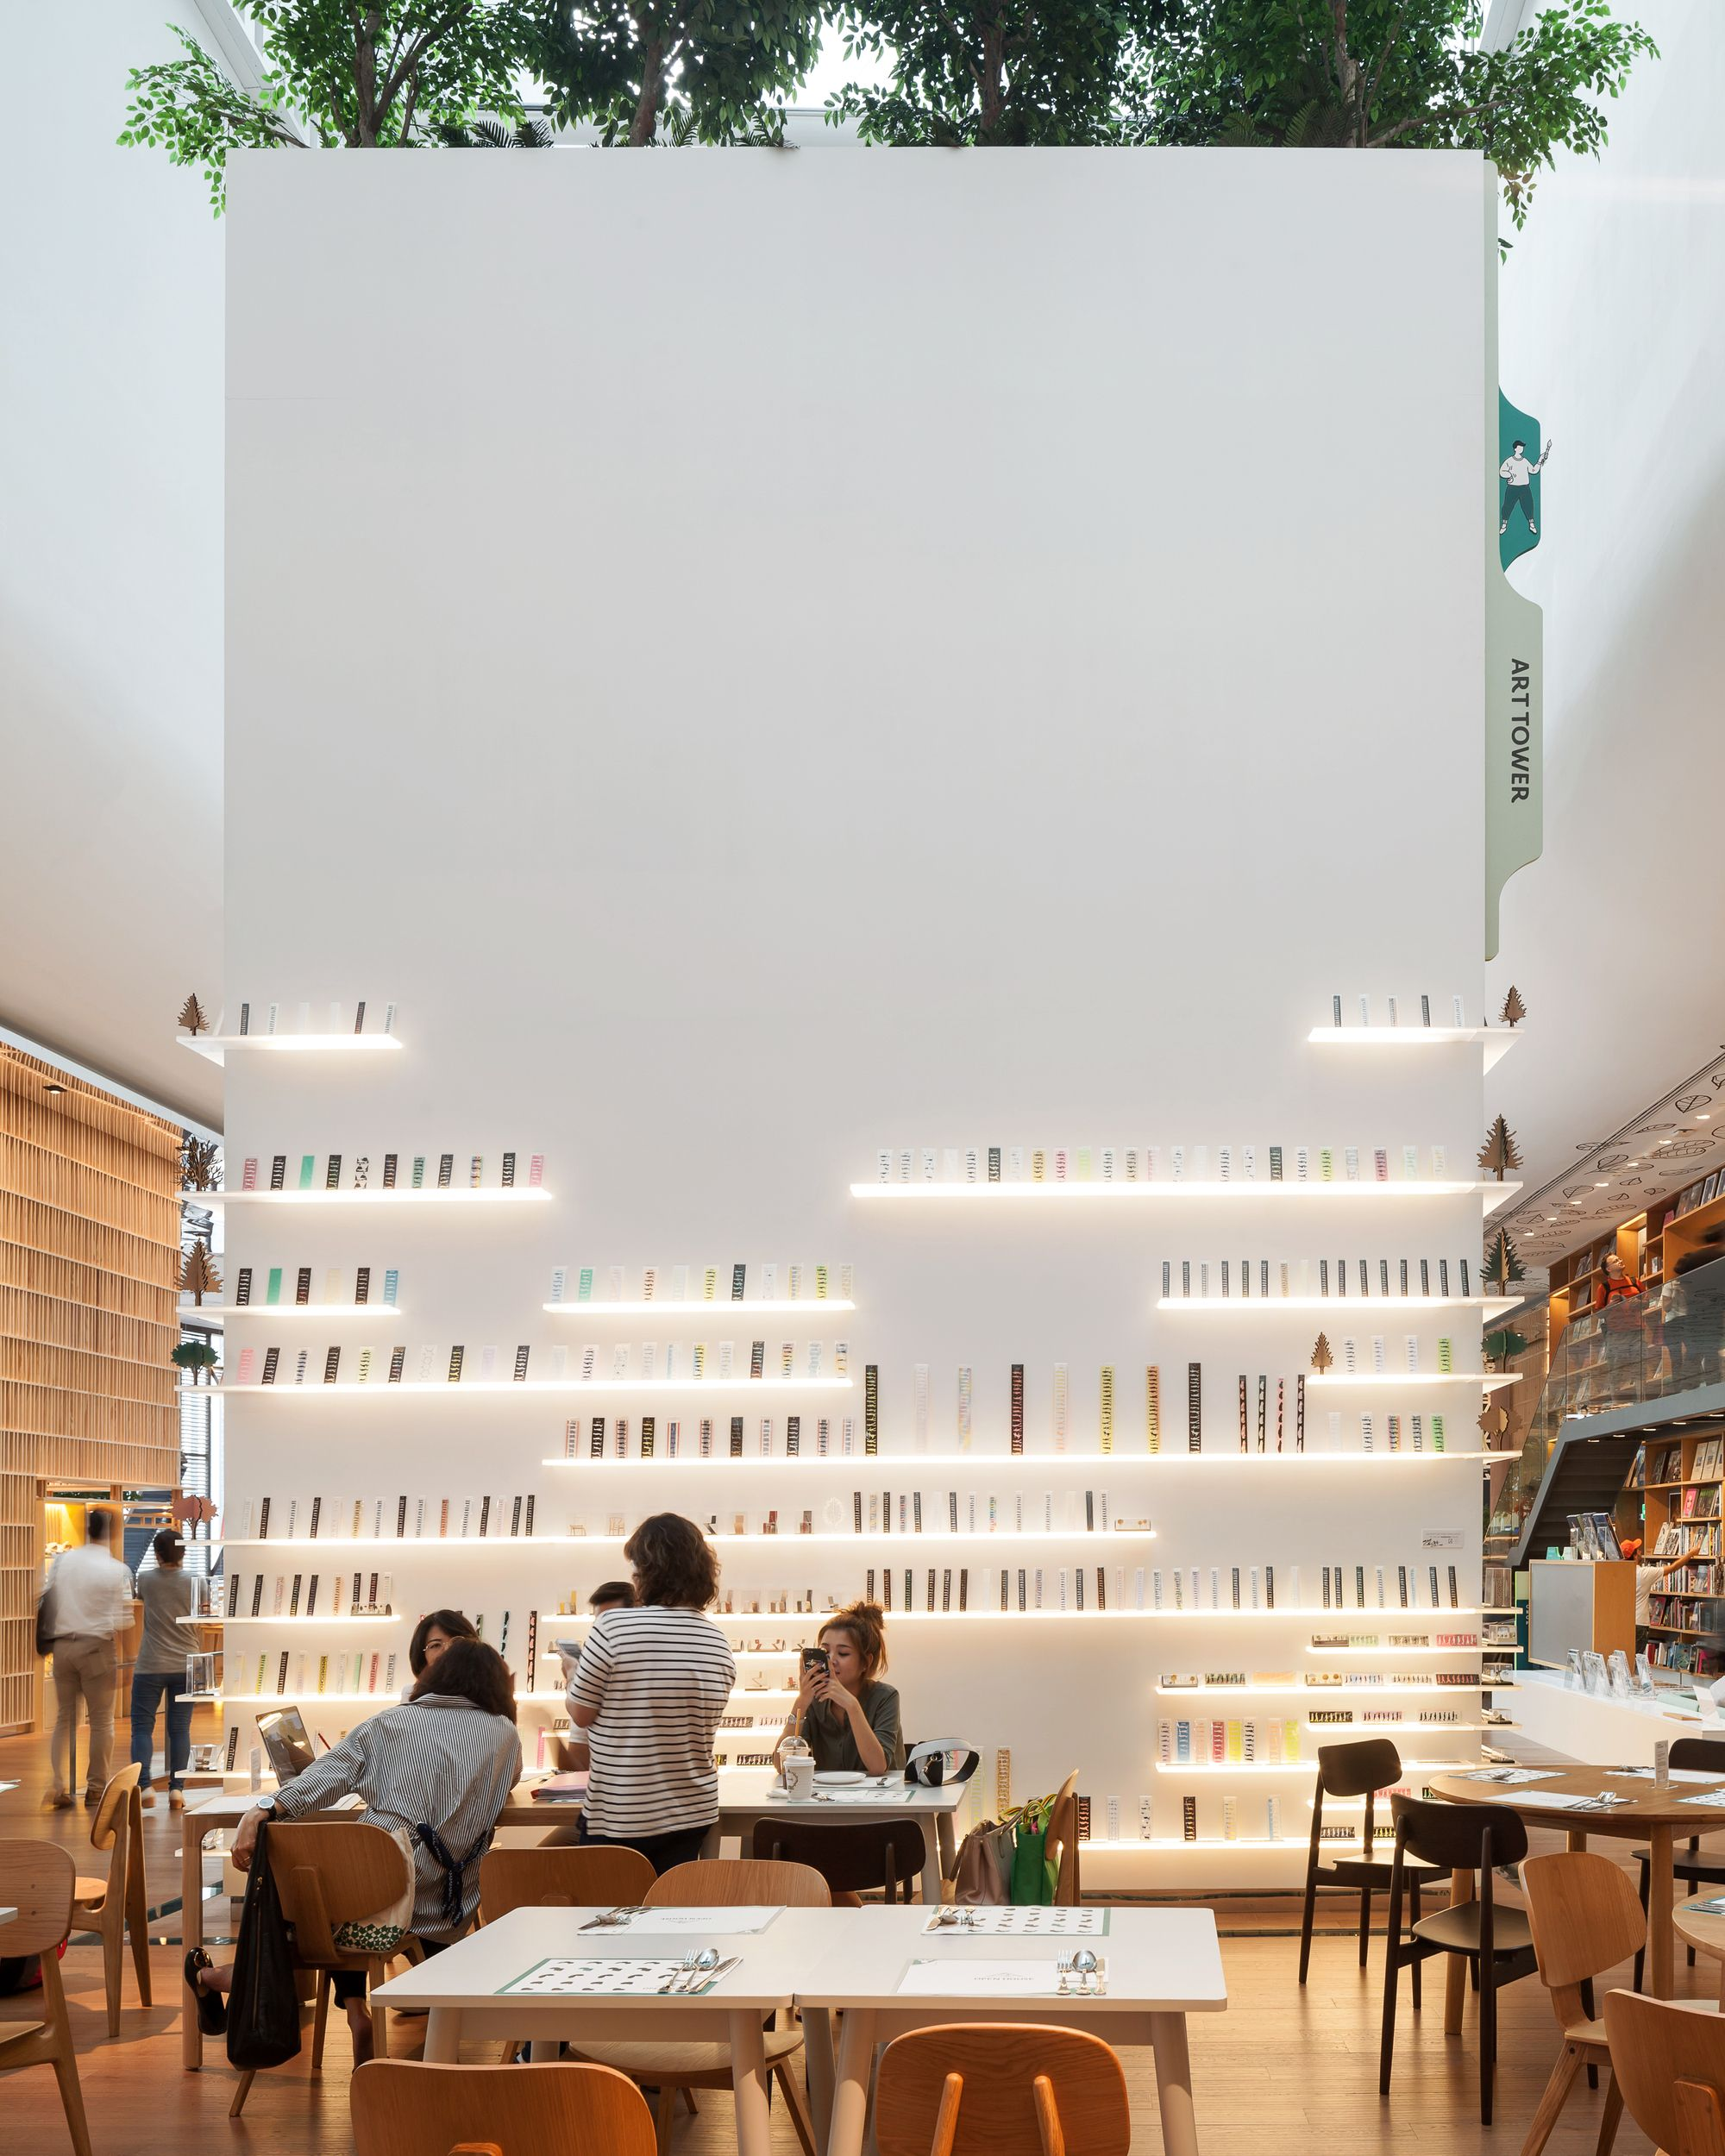 Klein Dytham architecture   14 is part of Restaurant interior -  Klein Dytham architecture  Photograph by Ketsiree Wongwan